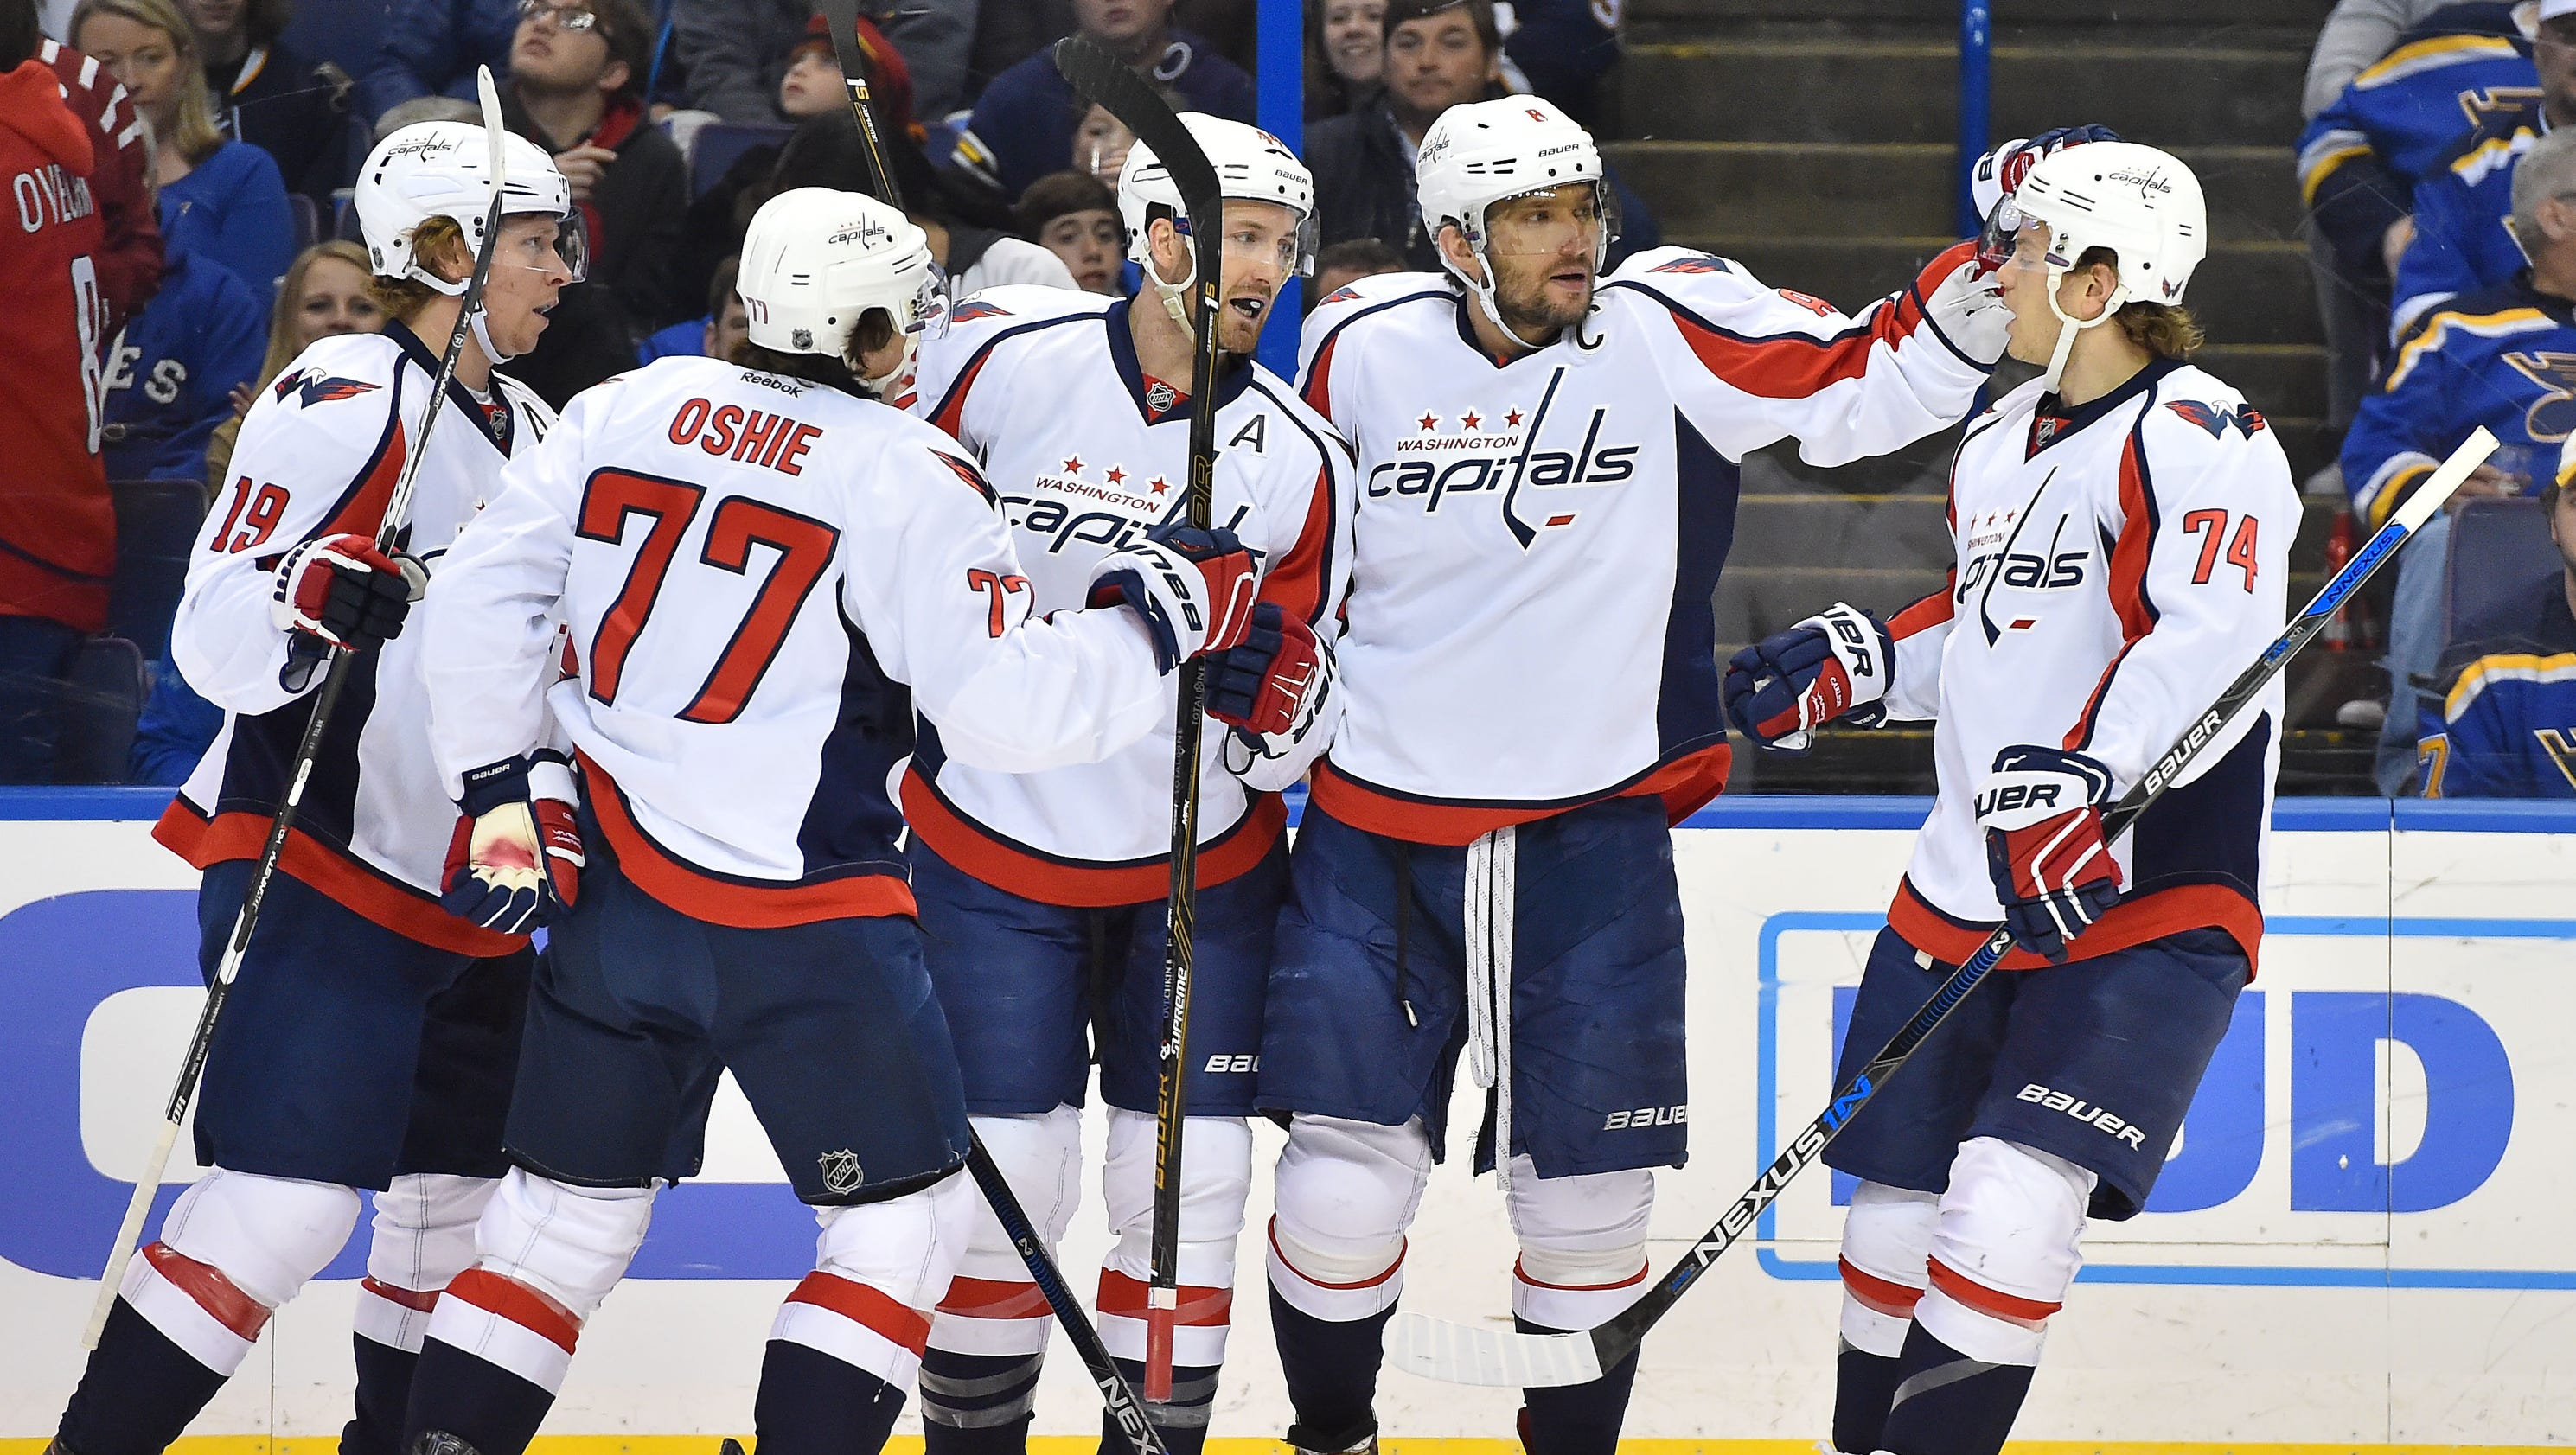 635960680762931783-usp-nhl--washington-capitals-at-st.-louis-blues